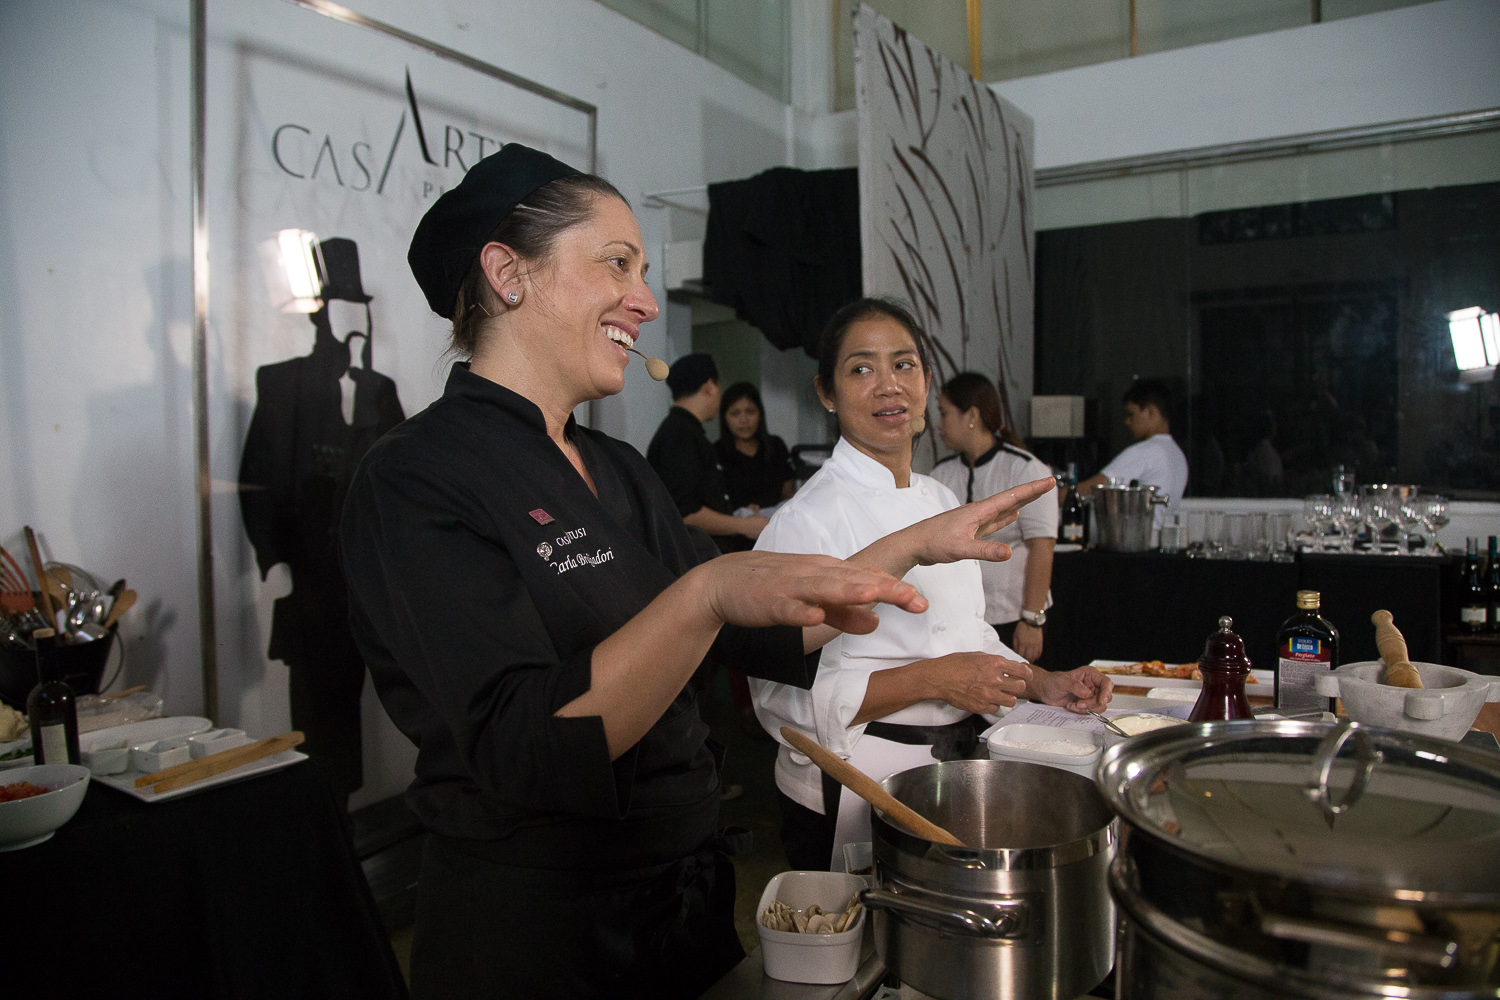 Chefs Carla Brigliadori and Margarita Forés get into Day 2.